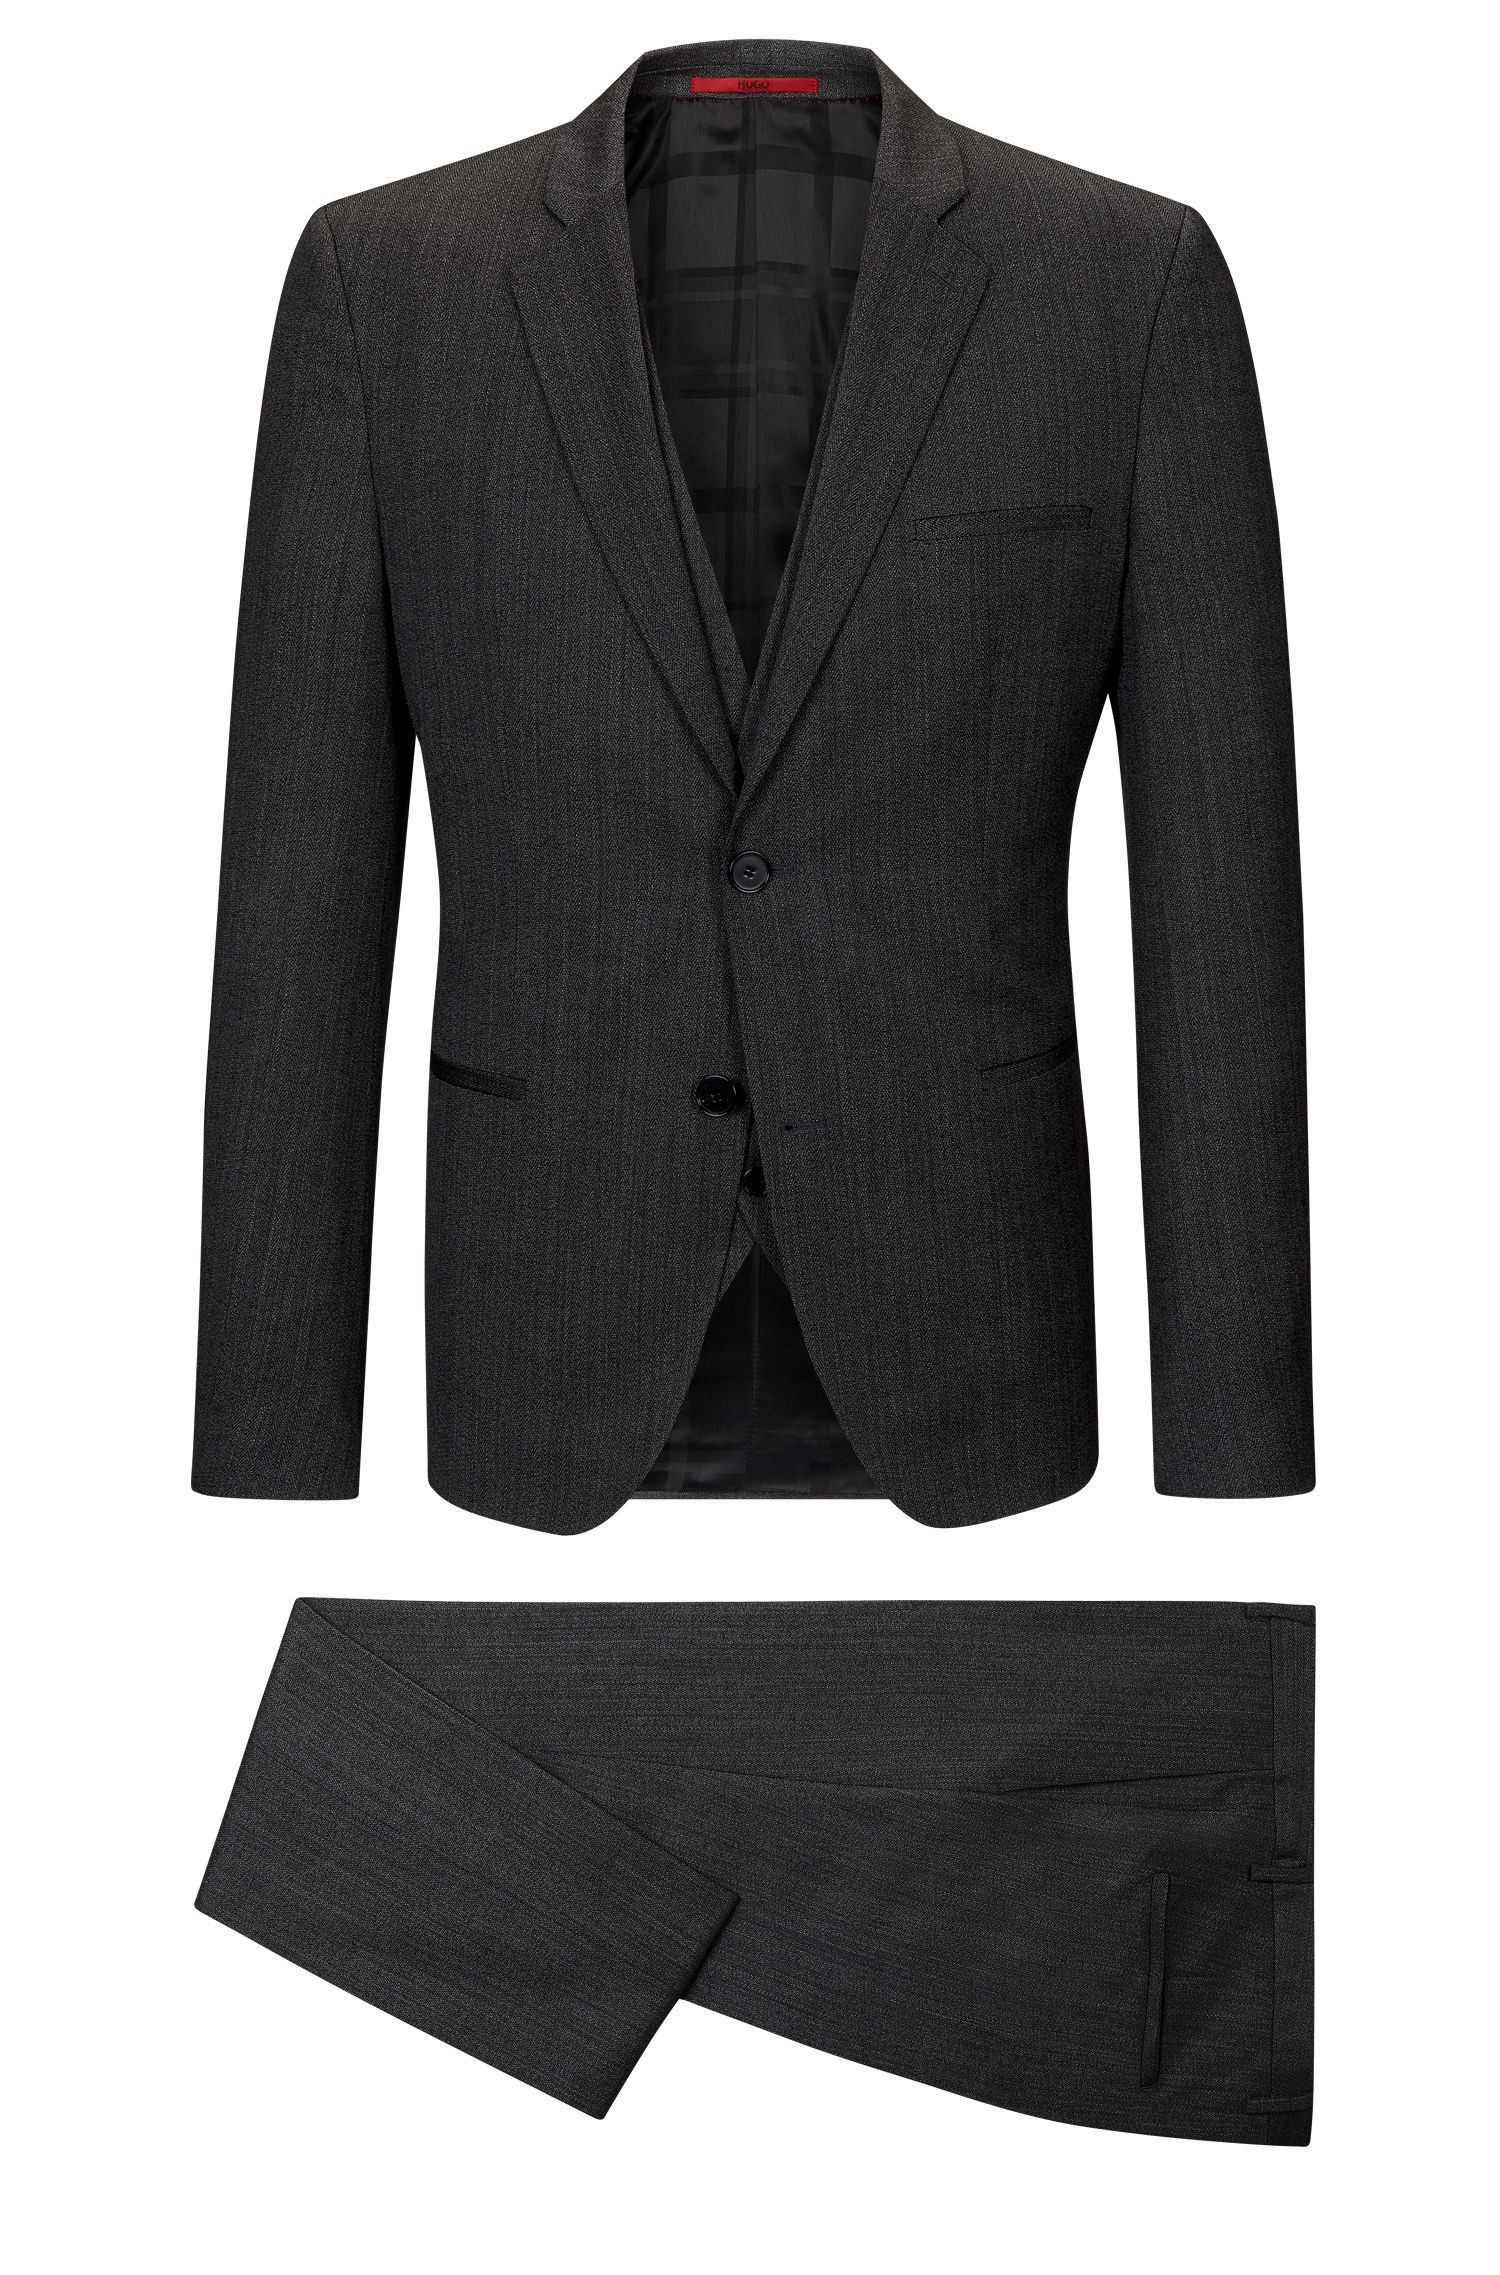 Herringbone Virgin Wool 3-Piece Suit, Extra Slim Fit | Arnin/Wilardo/Hermin